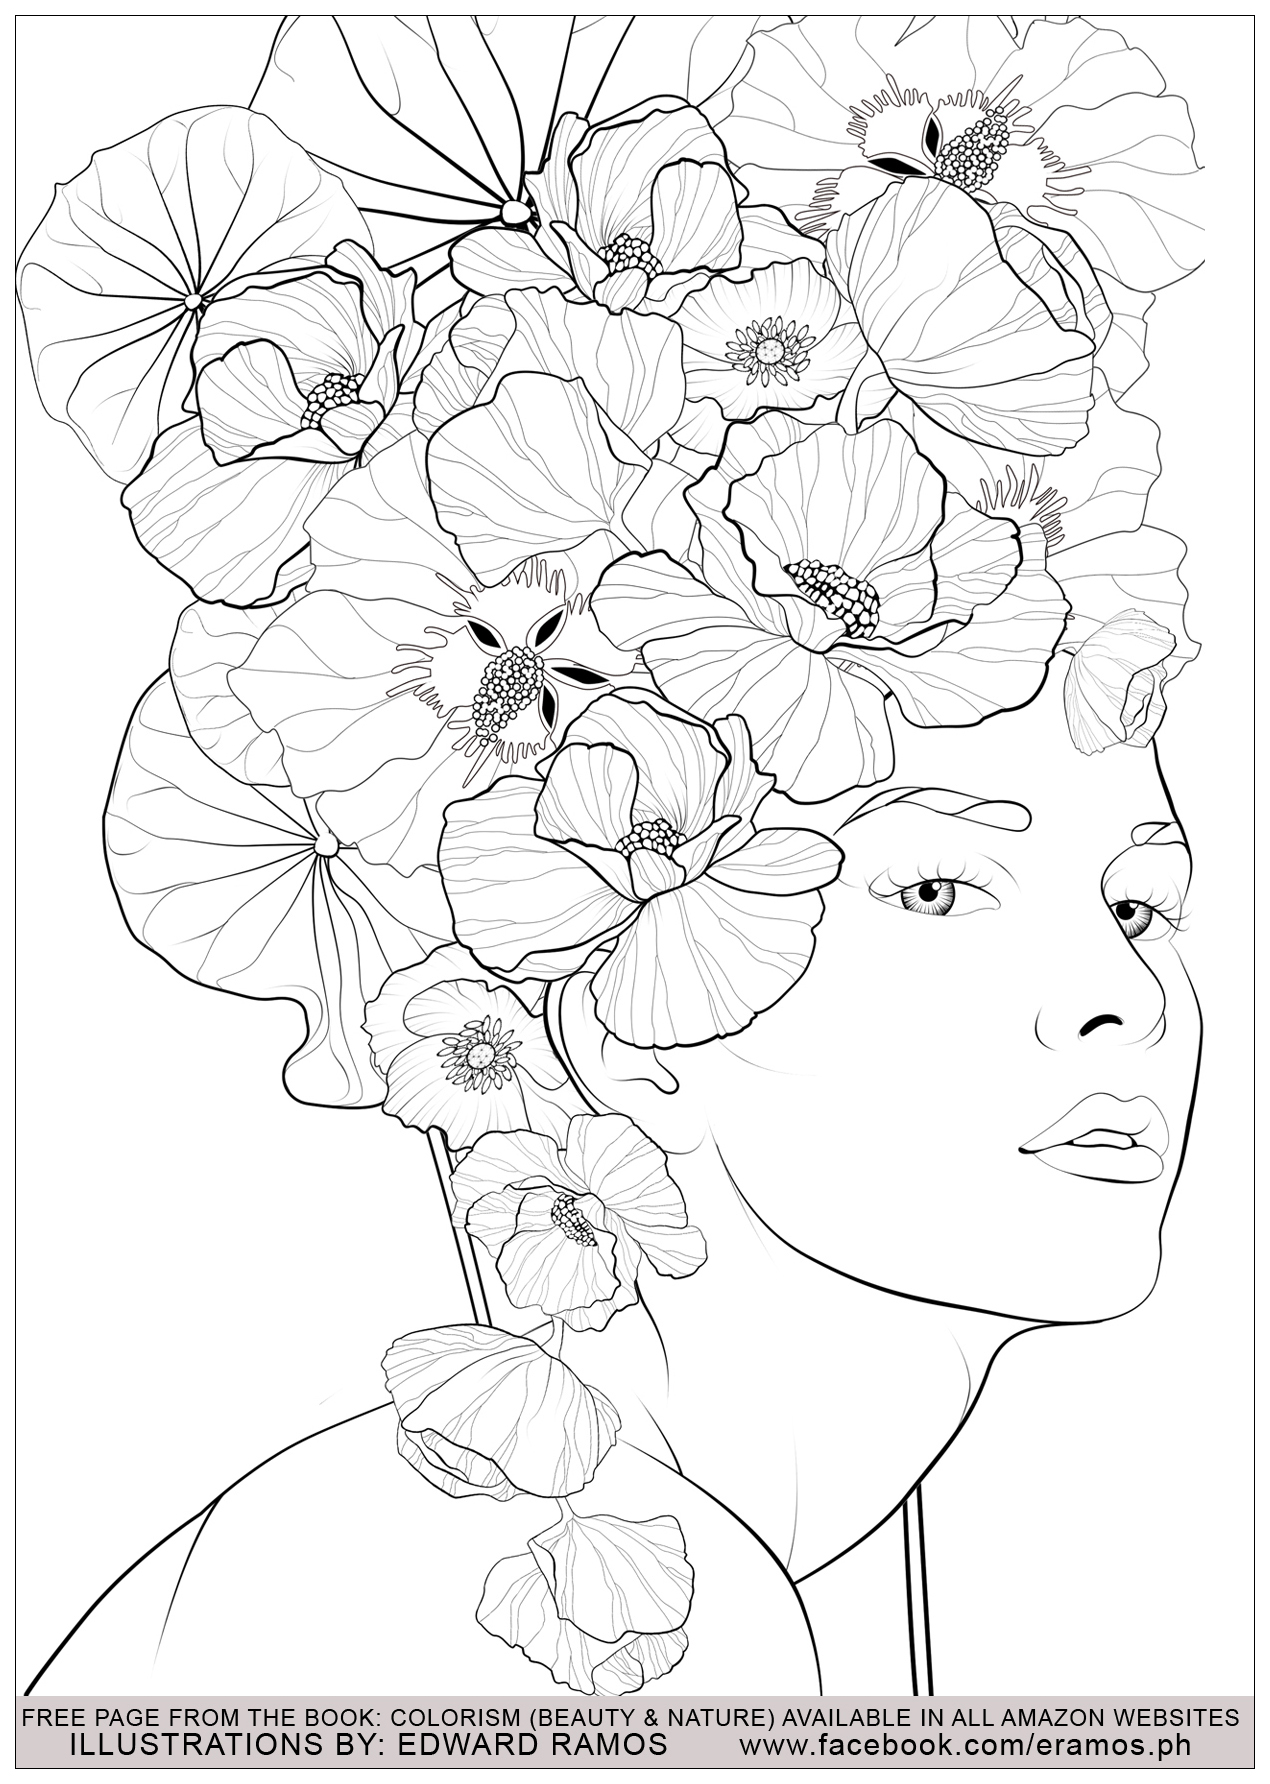 Coloring pictures of nature - Illustration From The Book Colorism Beauty Nature By Edward Ramos 3 Image